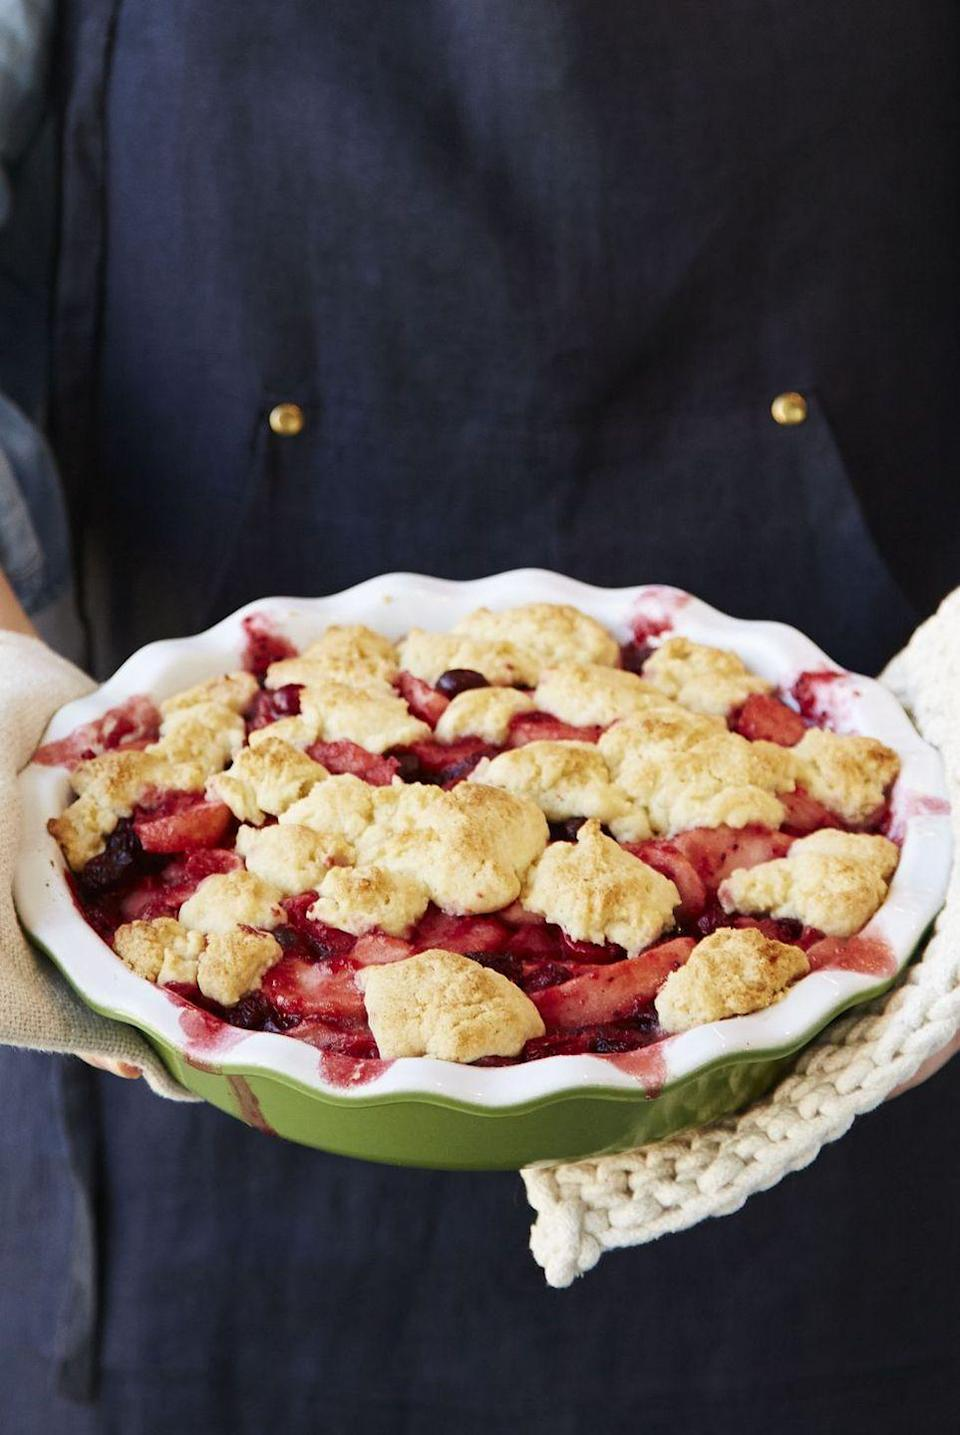 """<p>Who ever said baking had to be hard? The simple, buttery berry filling is crowned with a 4-ingredient topping. Just wait 'til you see how easy it is to eat.</p><p><em><a href=""""https://www.goodhousekeeping.com/food-recipes/a41083/brown-butter-pear-cranberry-cobbler-recipe/"""" rel=""""nofollow noopener"""" target=""""_blank"""" data-ylk=""""slk:Get the recipe for Brown Butter Pear & Cranberry Cobbler »"""" class=""""link rapid-noclick-resp"""">Get the recipe for Brown Butter Pear & Cranberry Cobbler »</a></em></p>"""